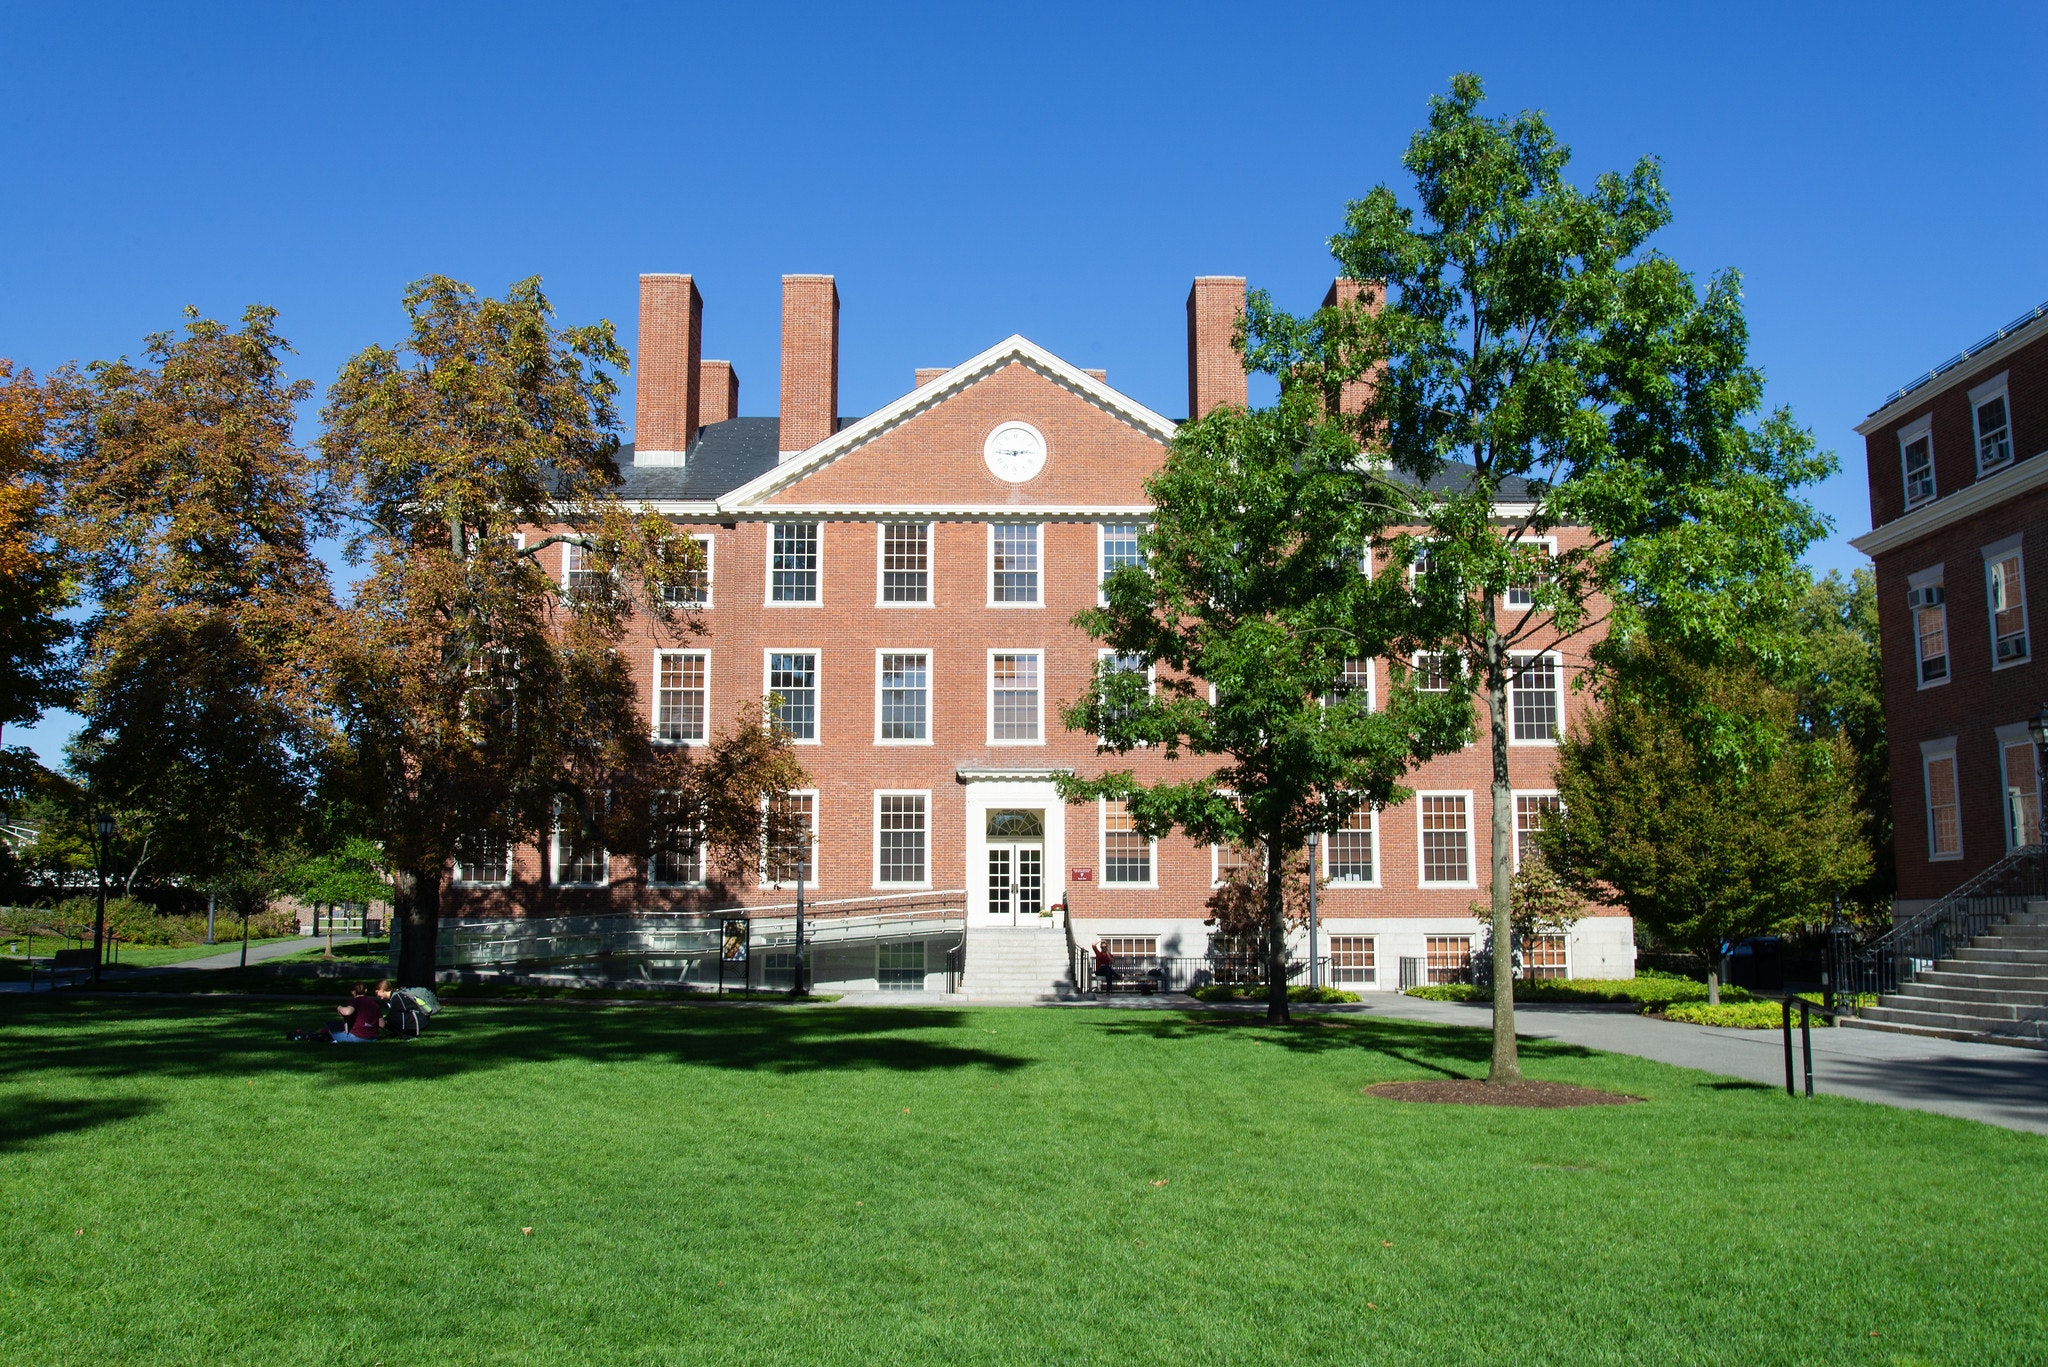 A brick office building with adjacent trees and green grass on a sunny day. The sky is blue.